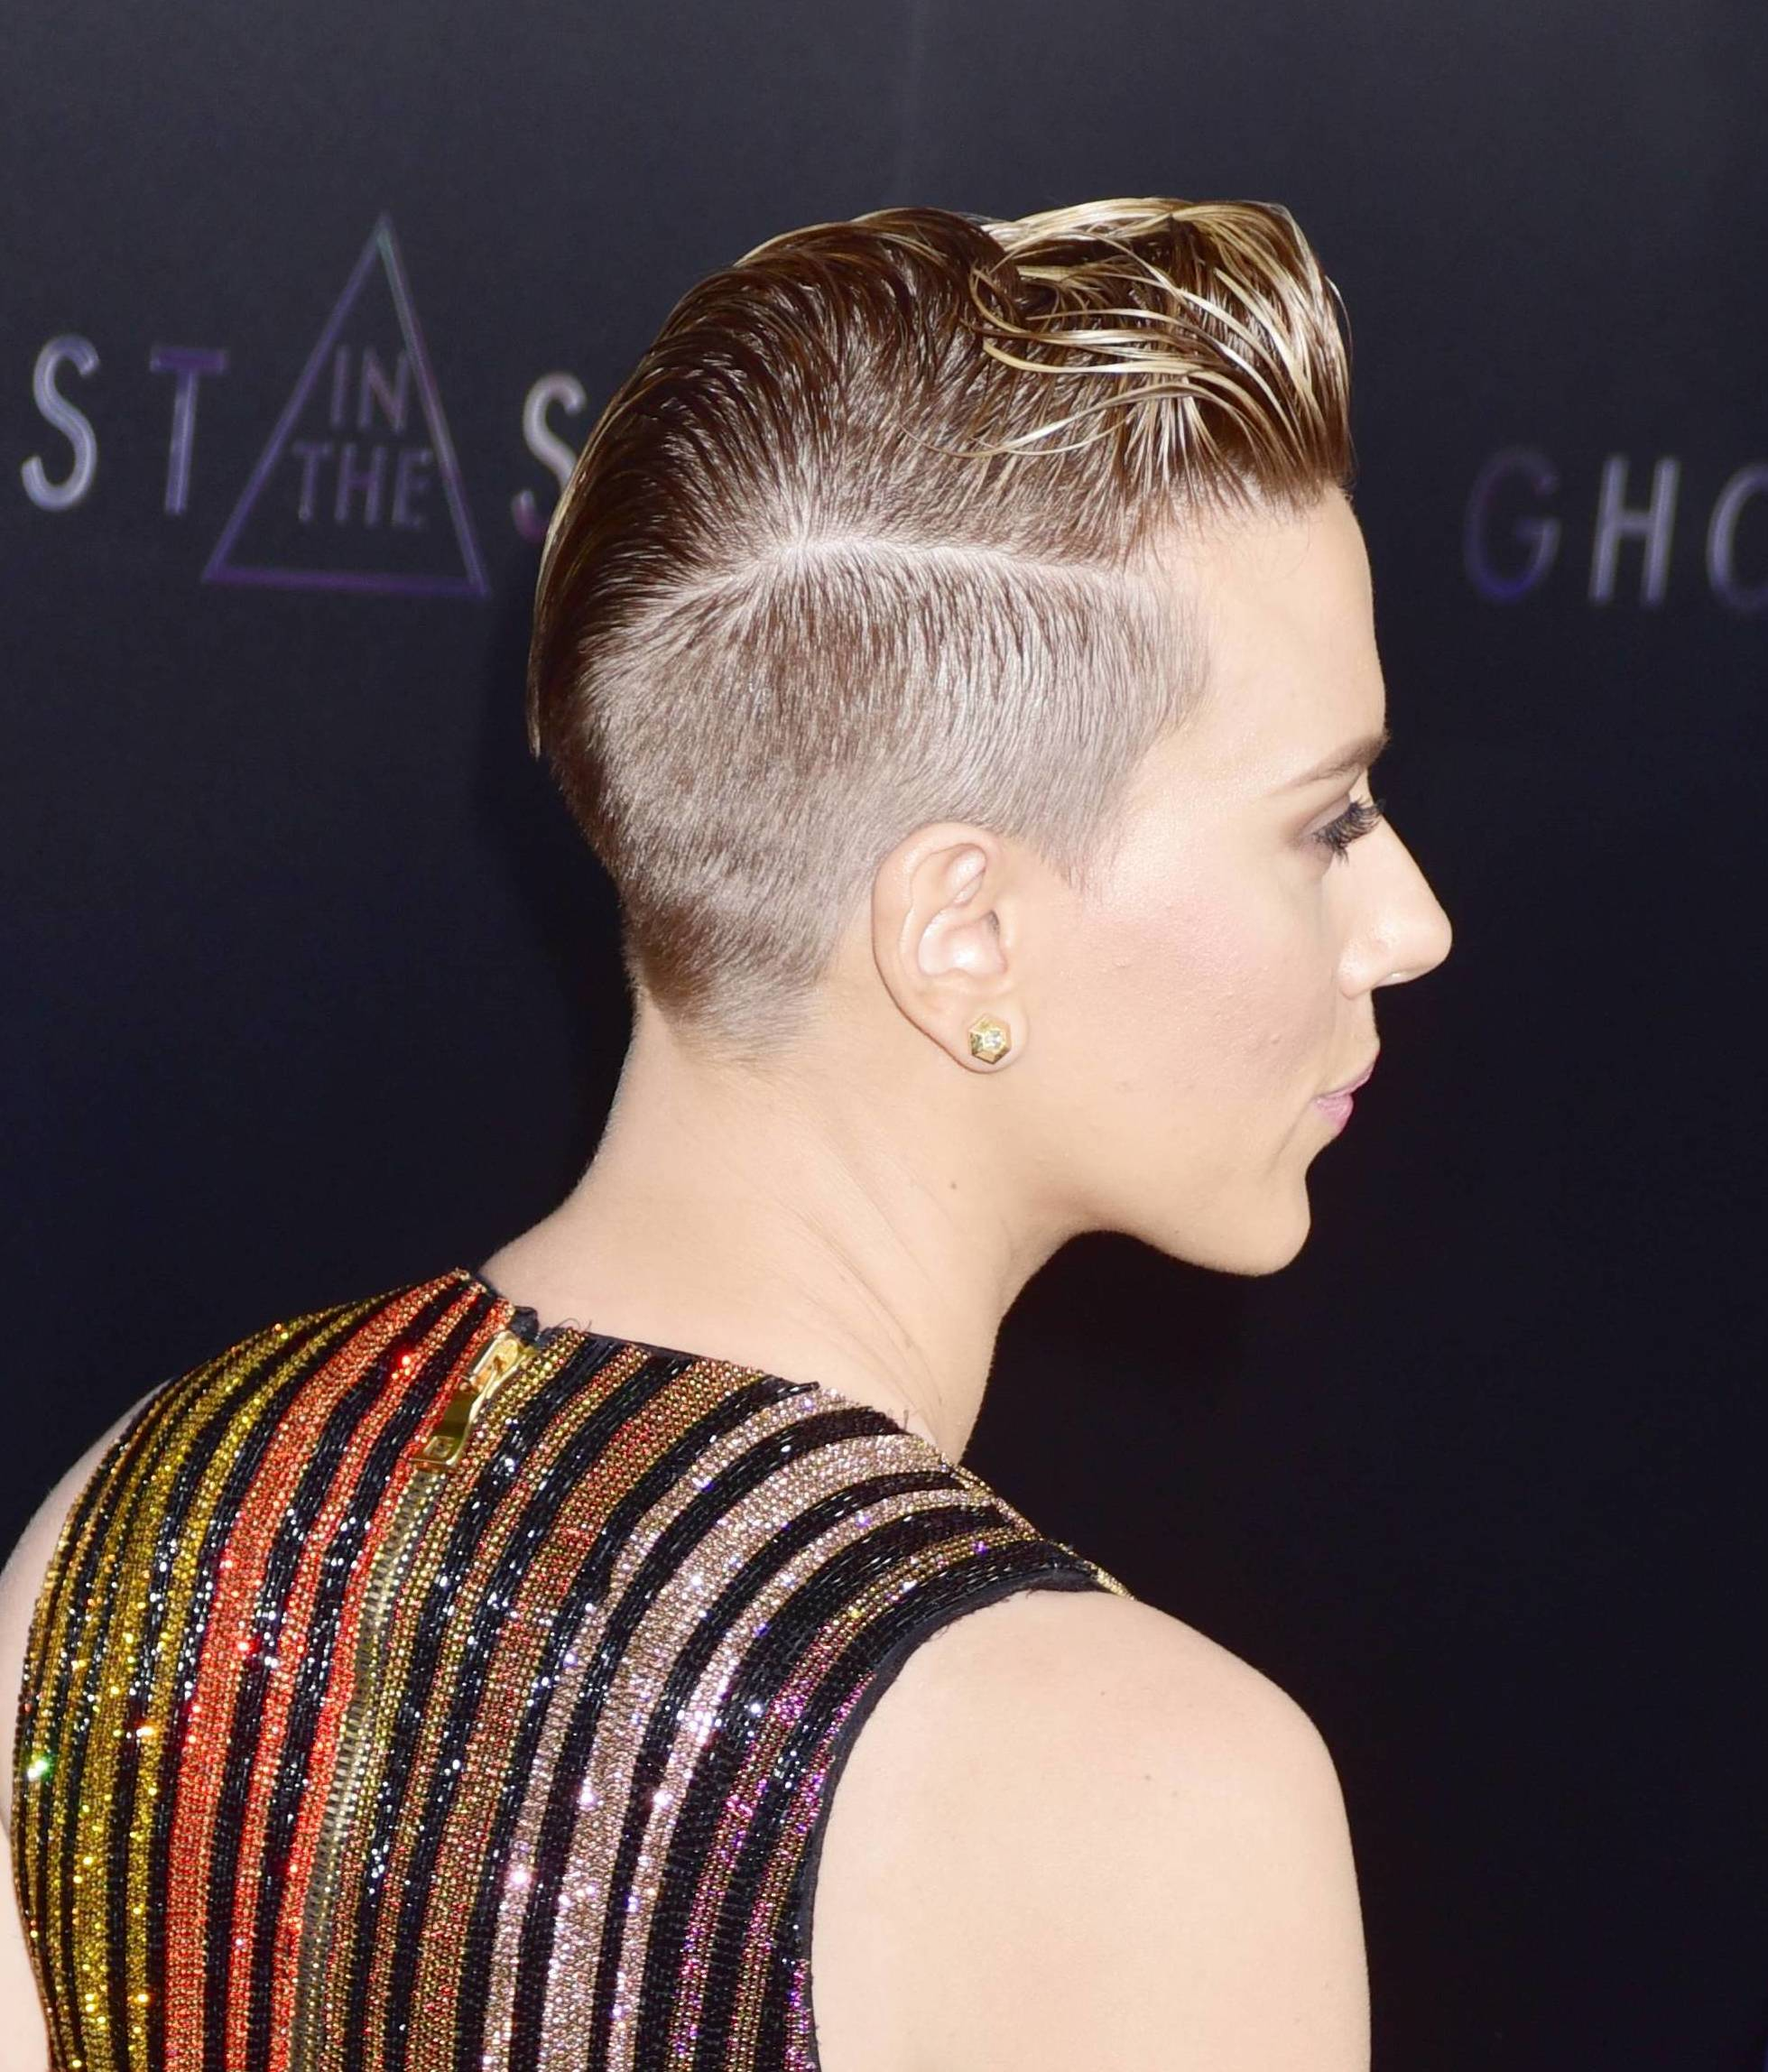 Scarlett Johansson In The Cross Hairs At Ghost In The Shell Premiere New York Gossip Gal By Roz